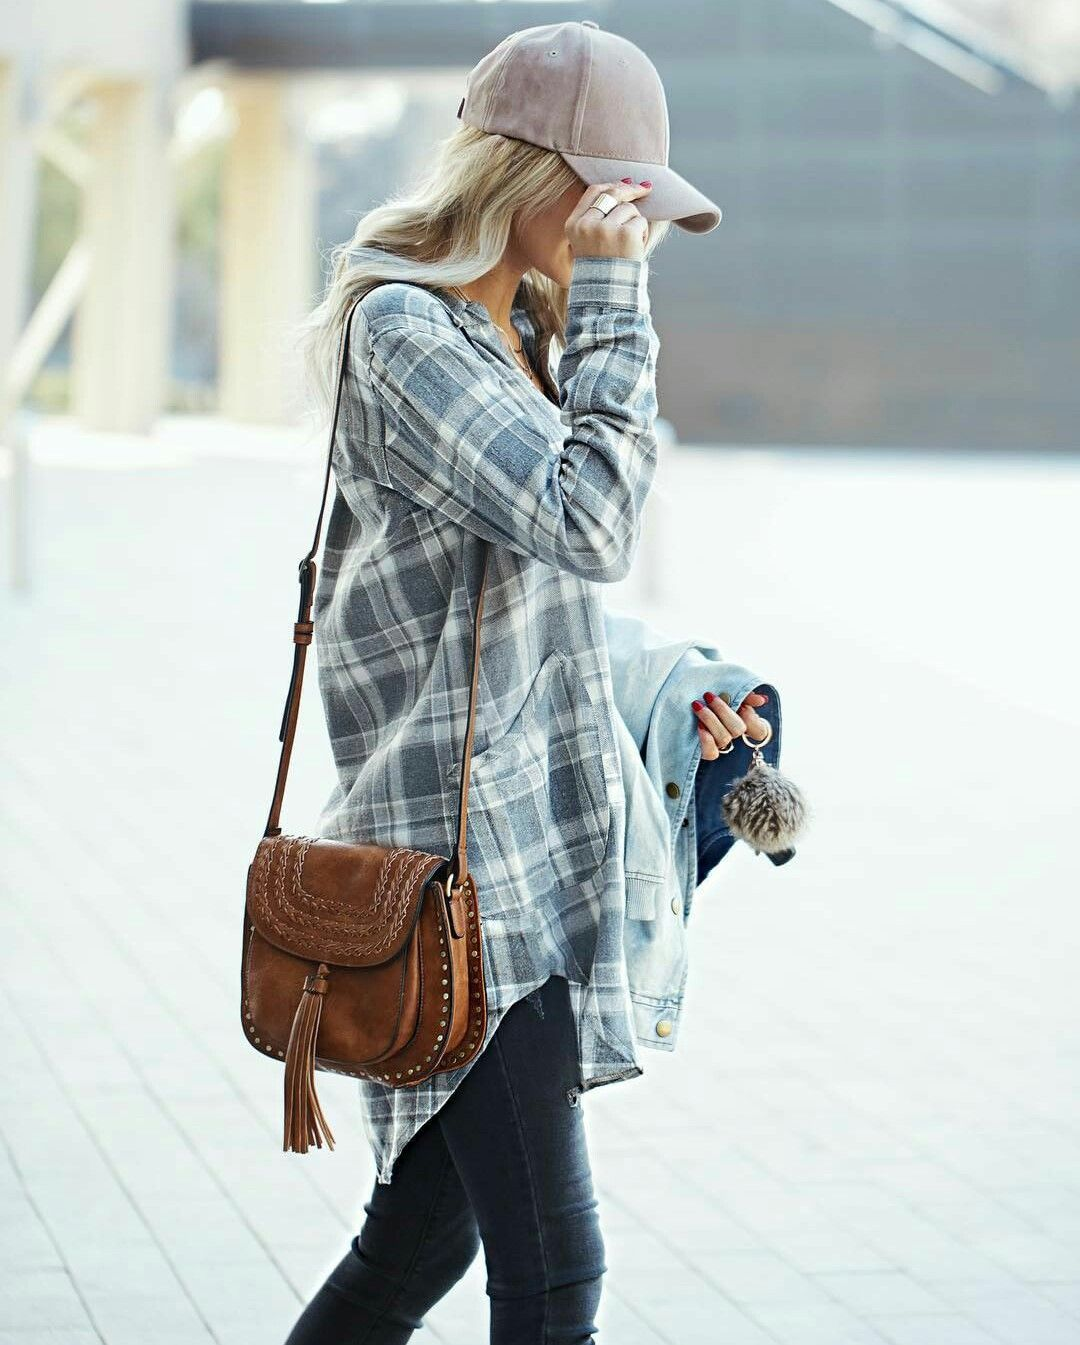 Flannel and denim jacket outfit  Pin by Kayleigh Noelle on Fashion  Pinterest  Fashion shops